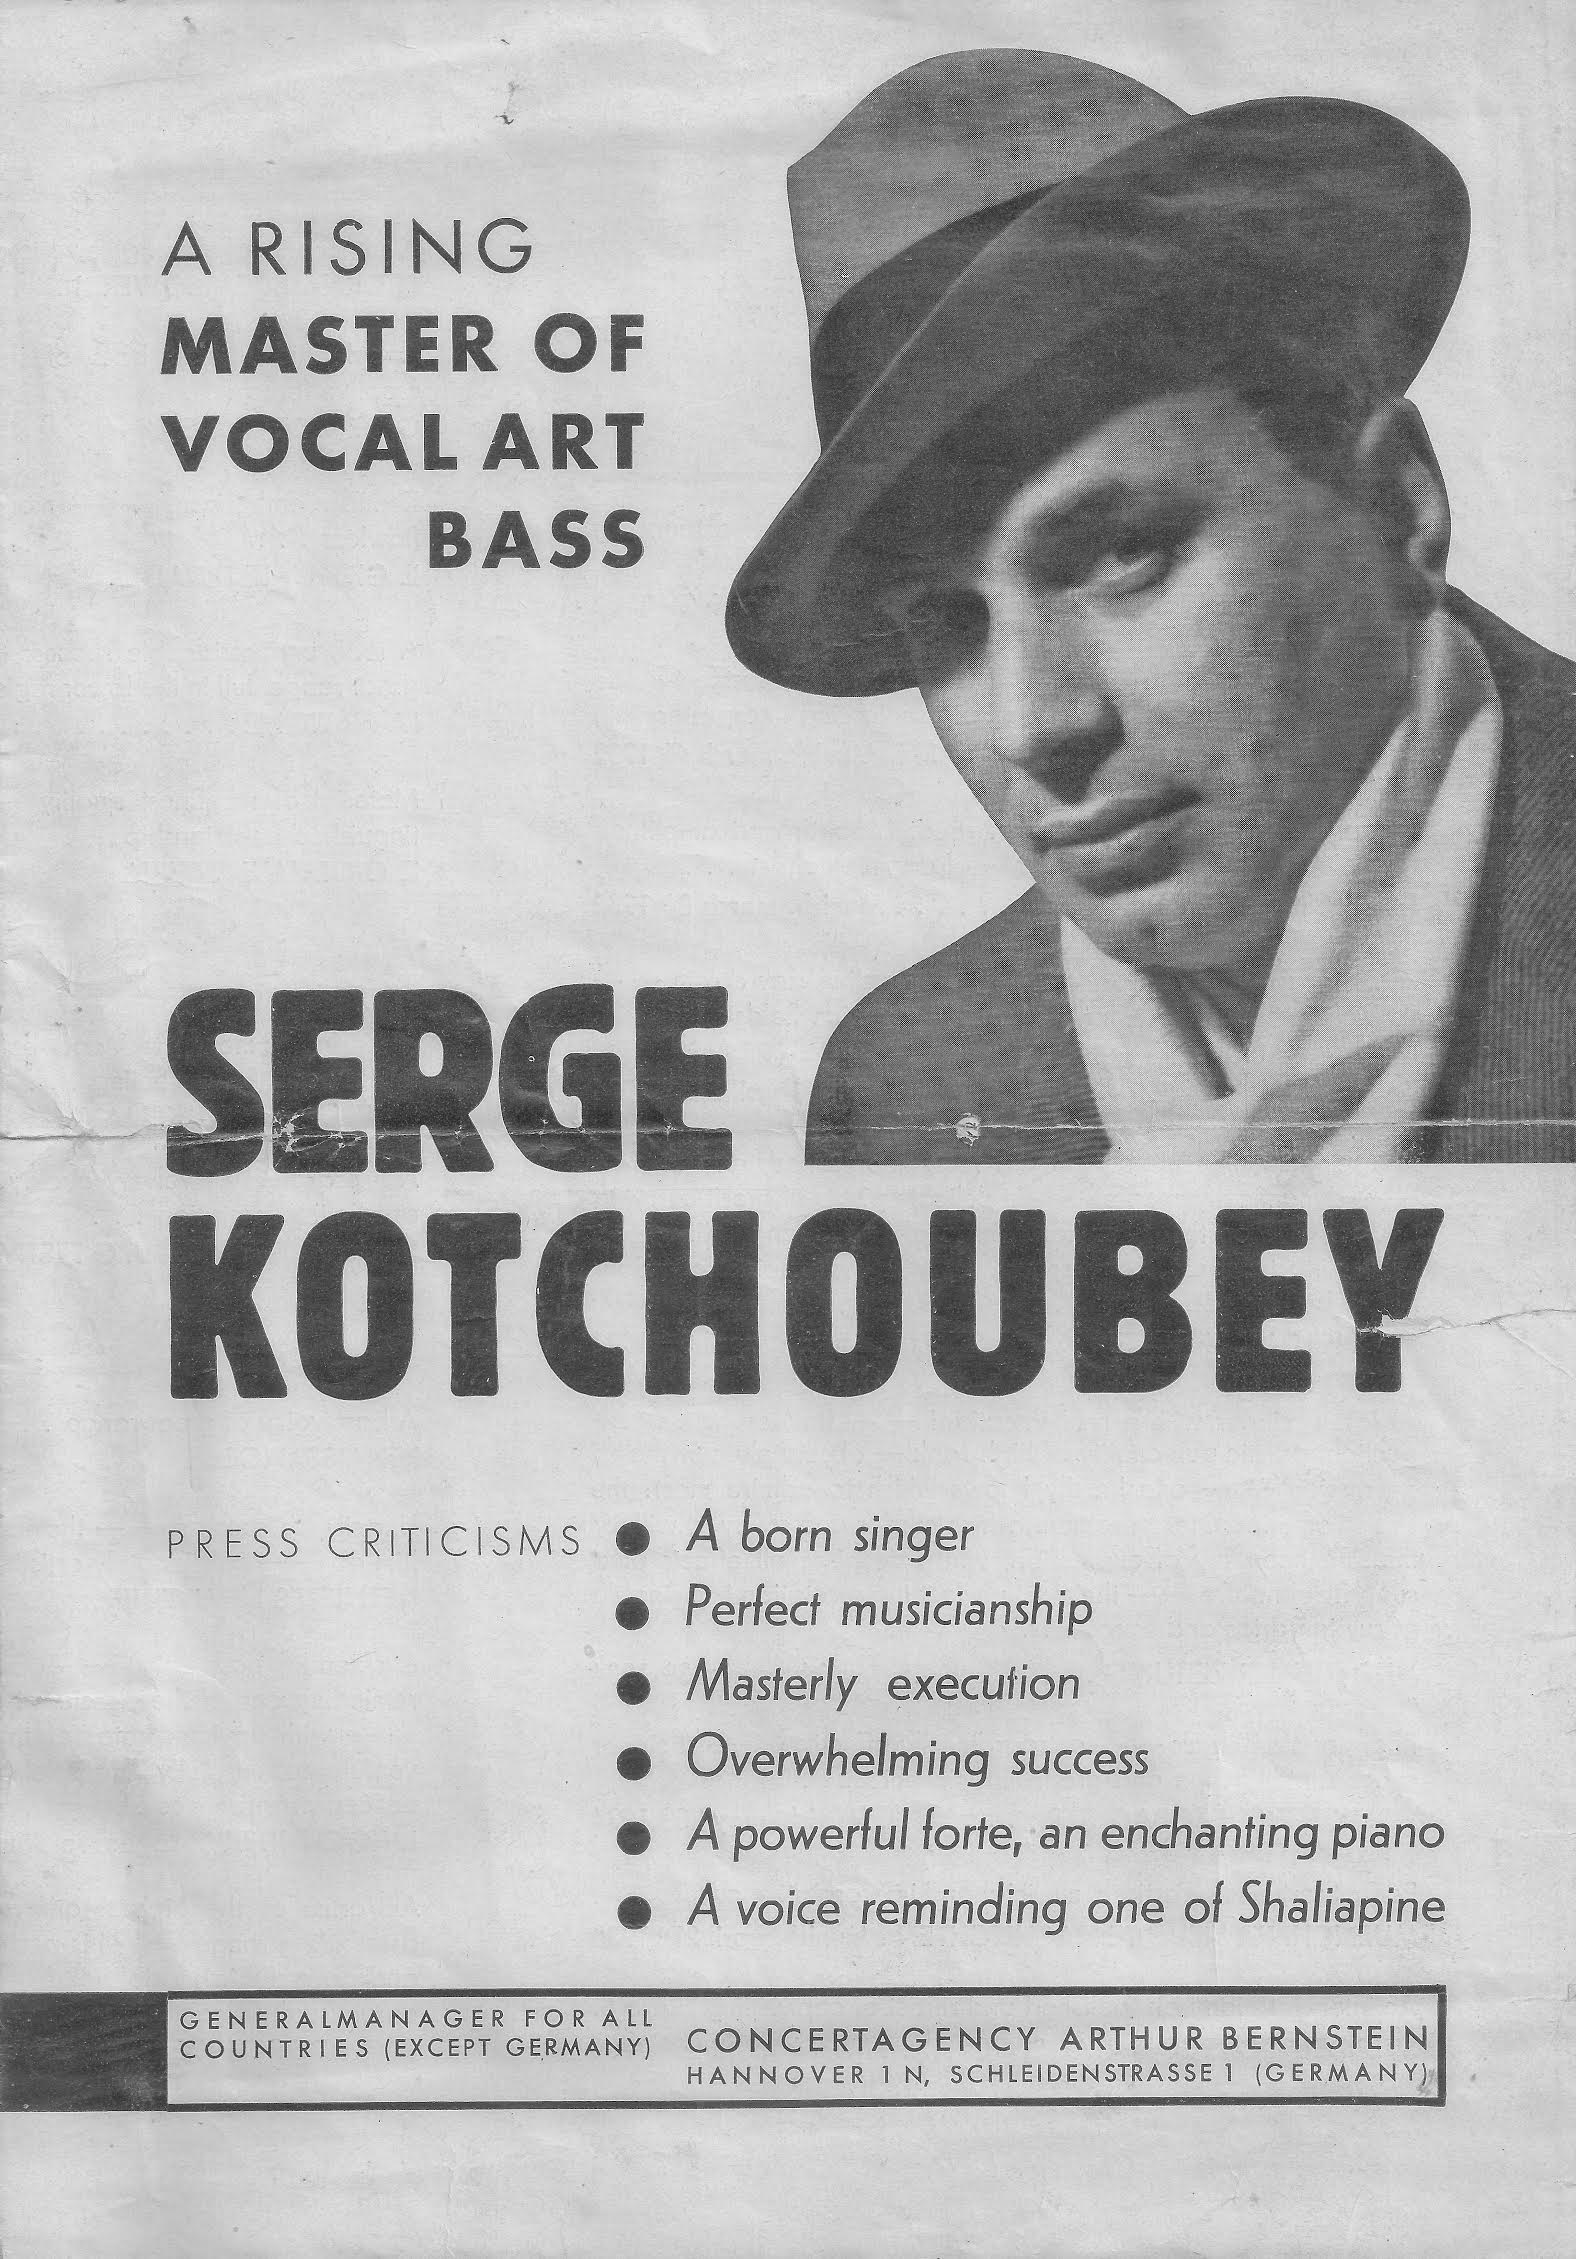 Prmotional Advertisement for Serge Kotchoubey (1930s)